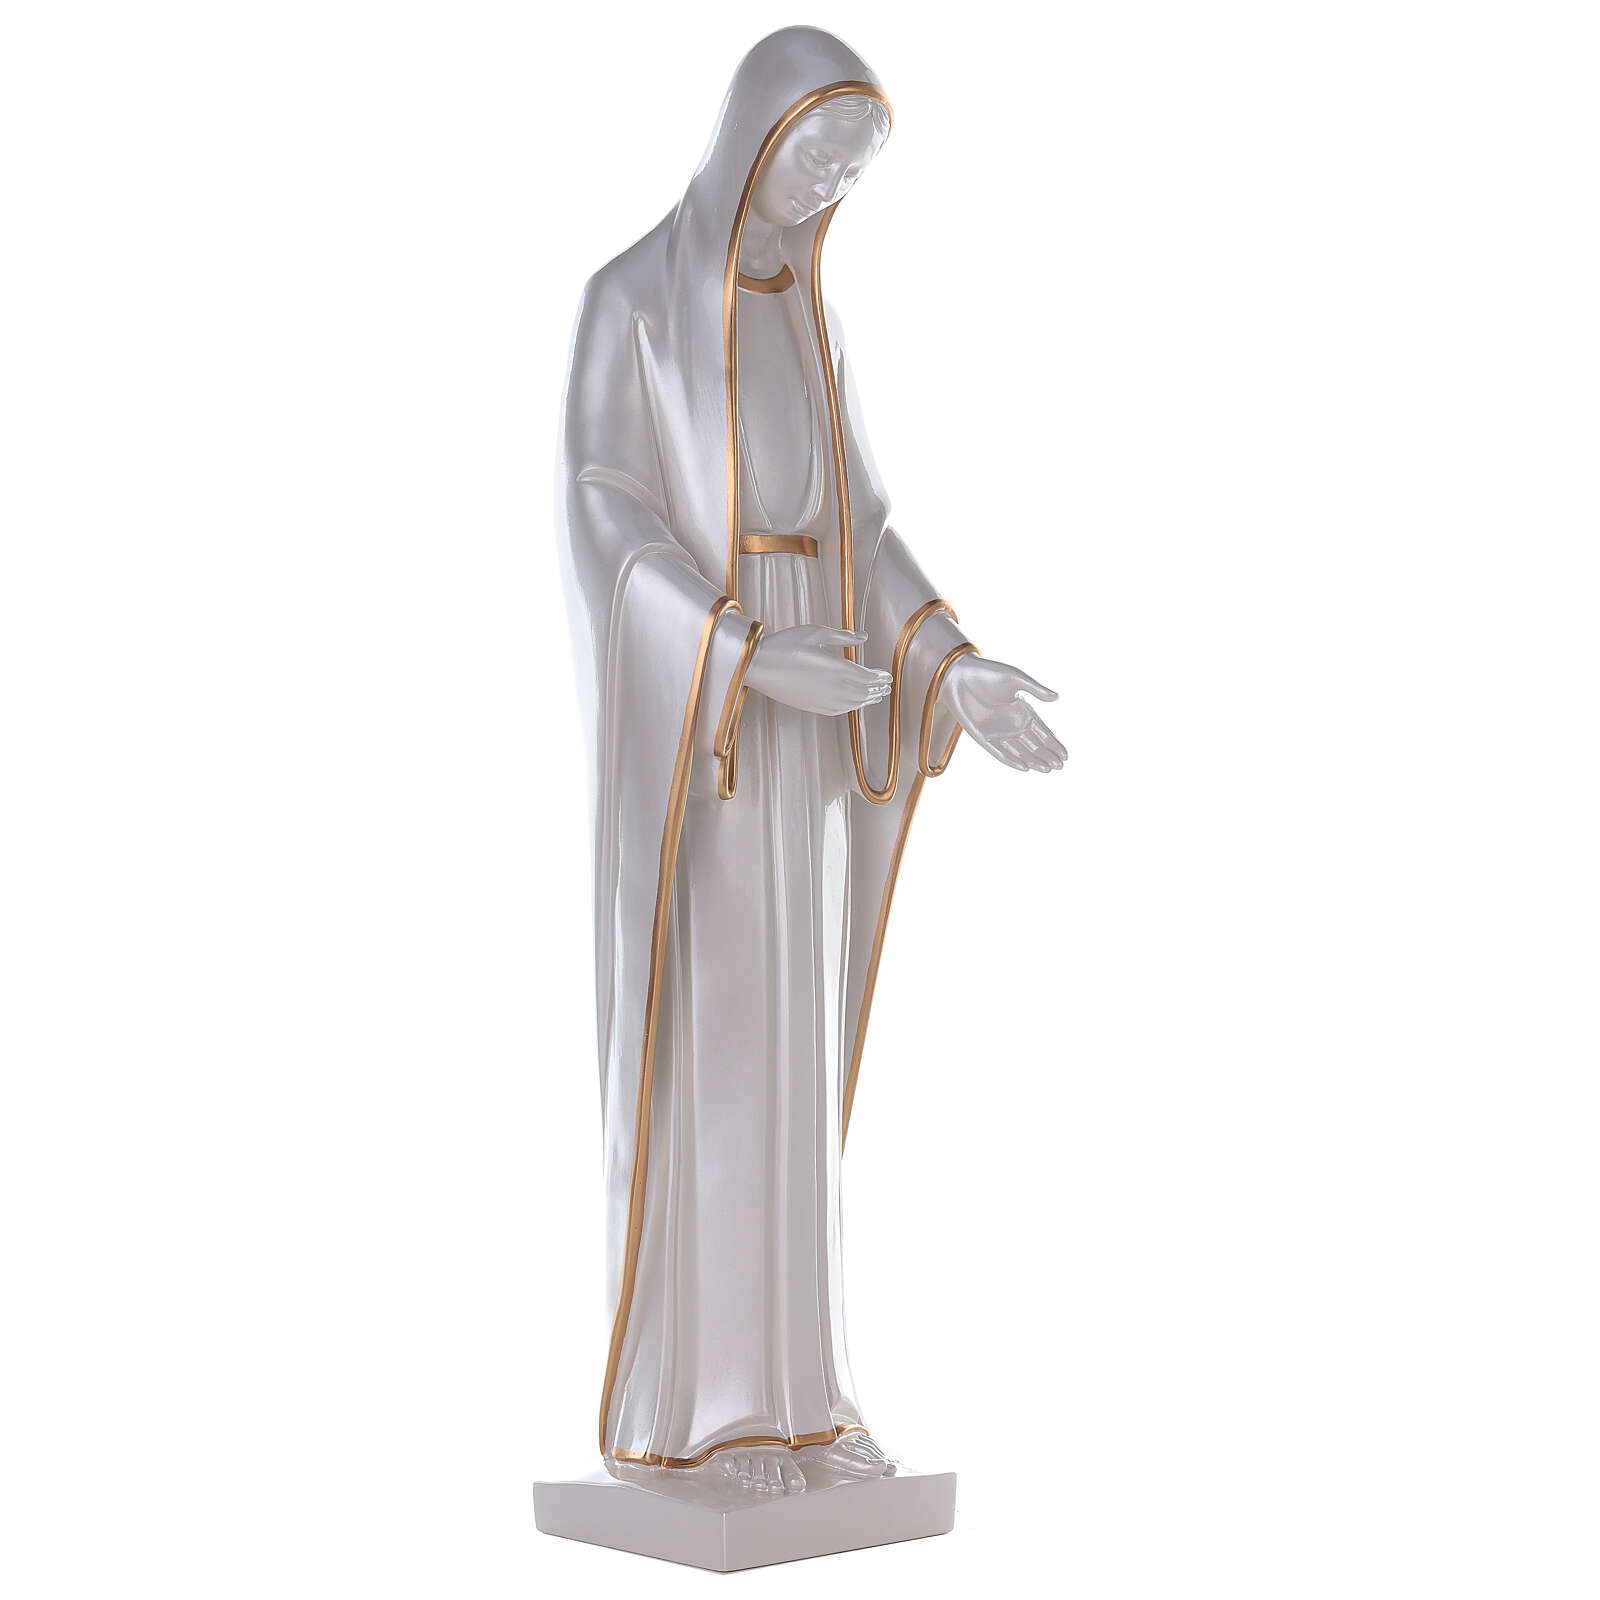 Miraculous Mary statue in reconstituted marble mother of pearl gold decor 4